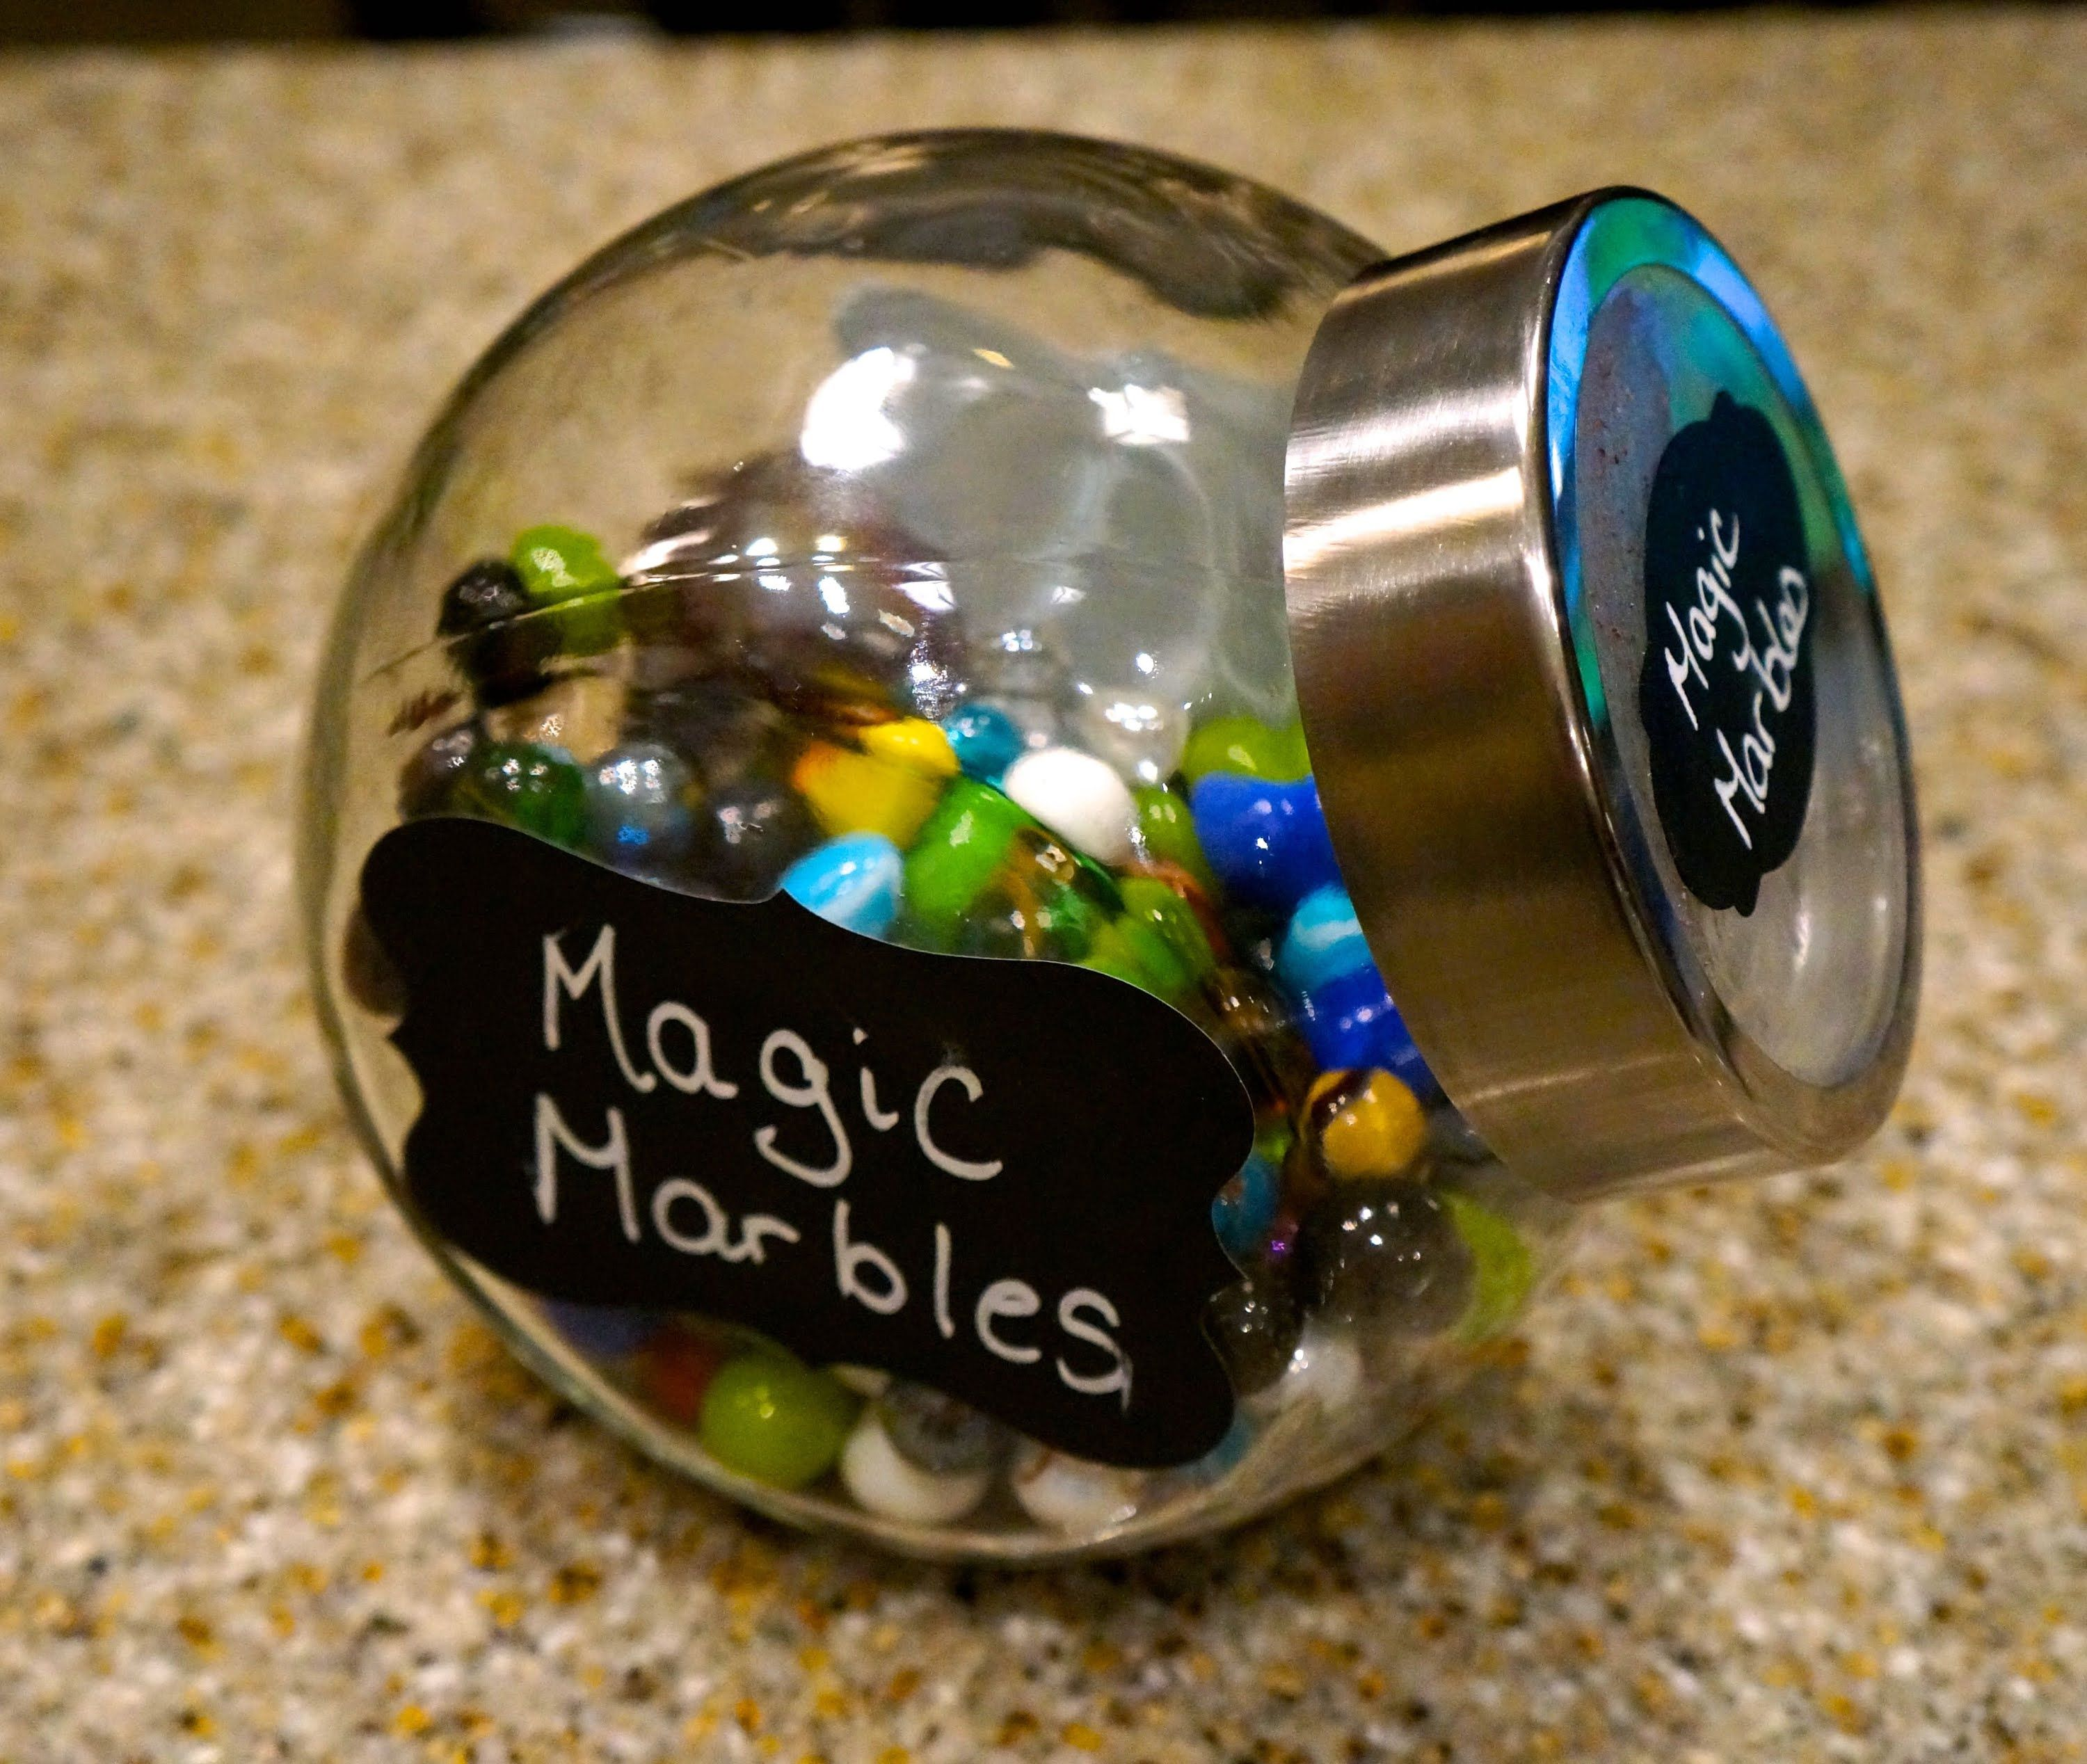 How to Motivate and Reward Children with Magic Marbles